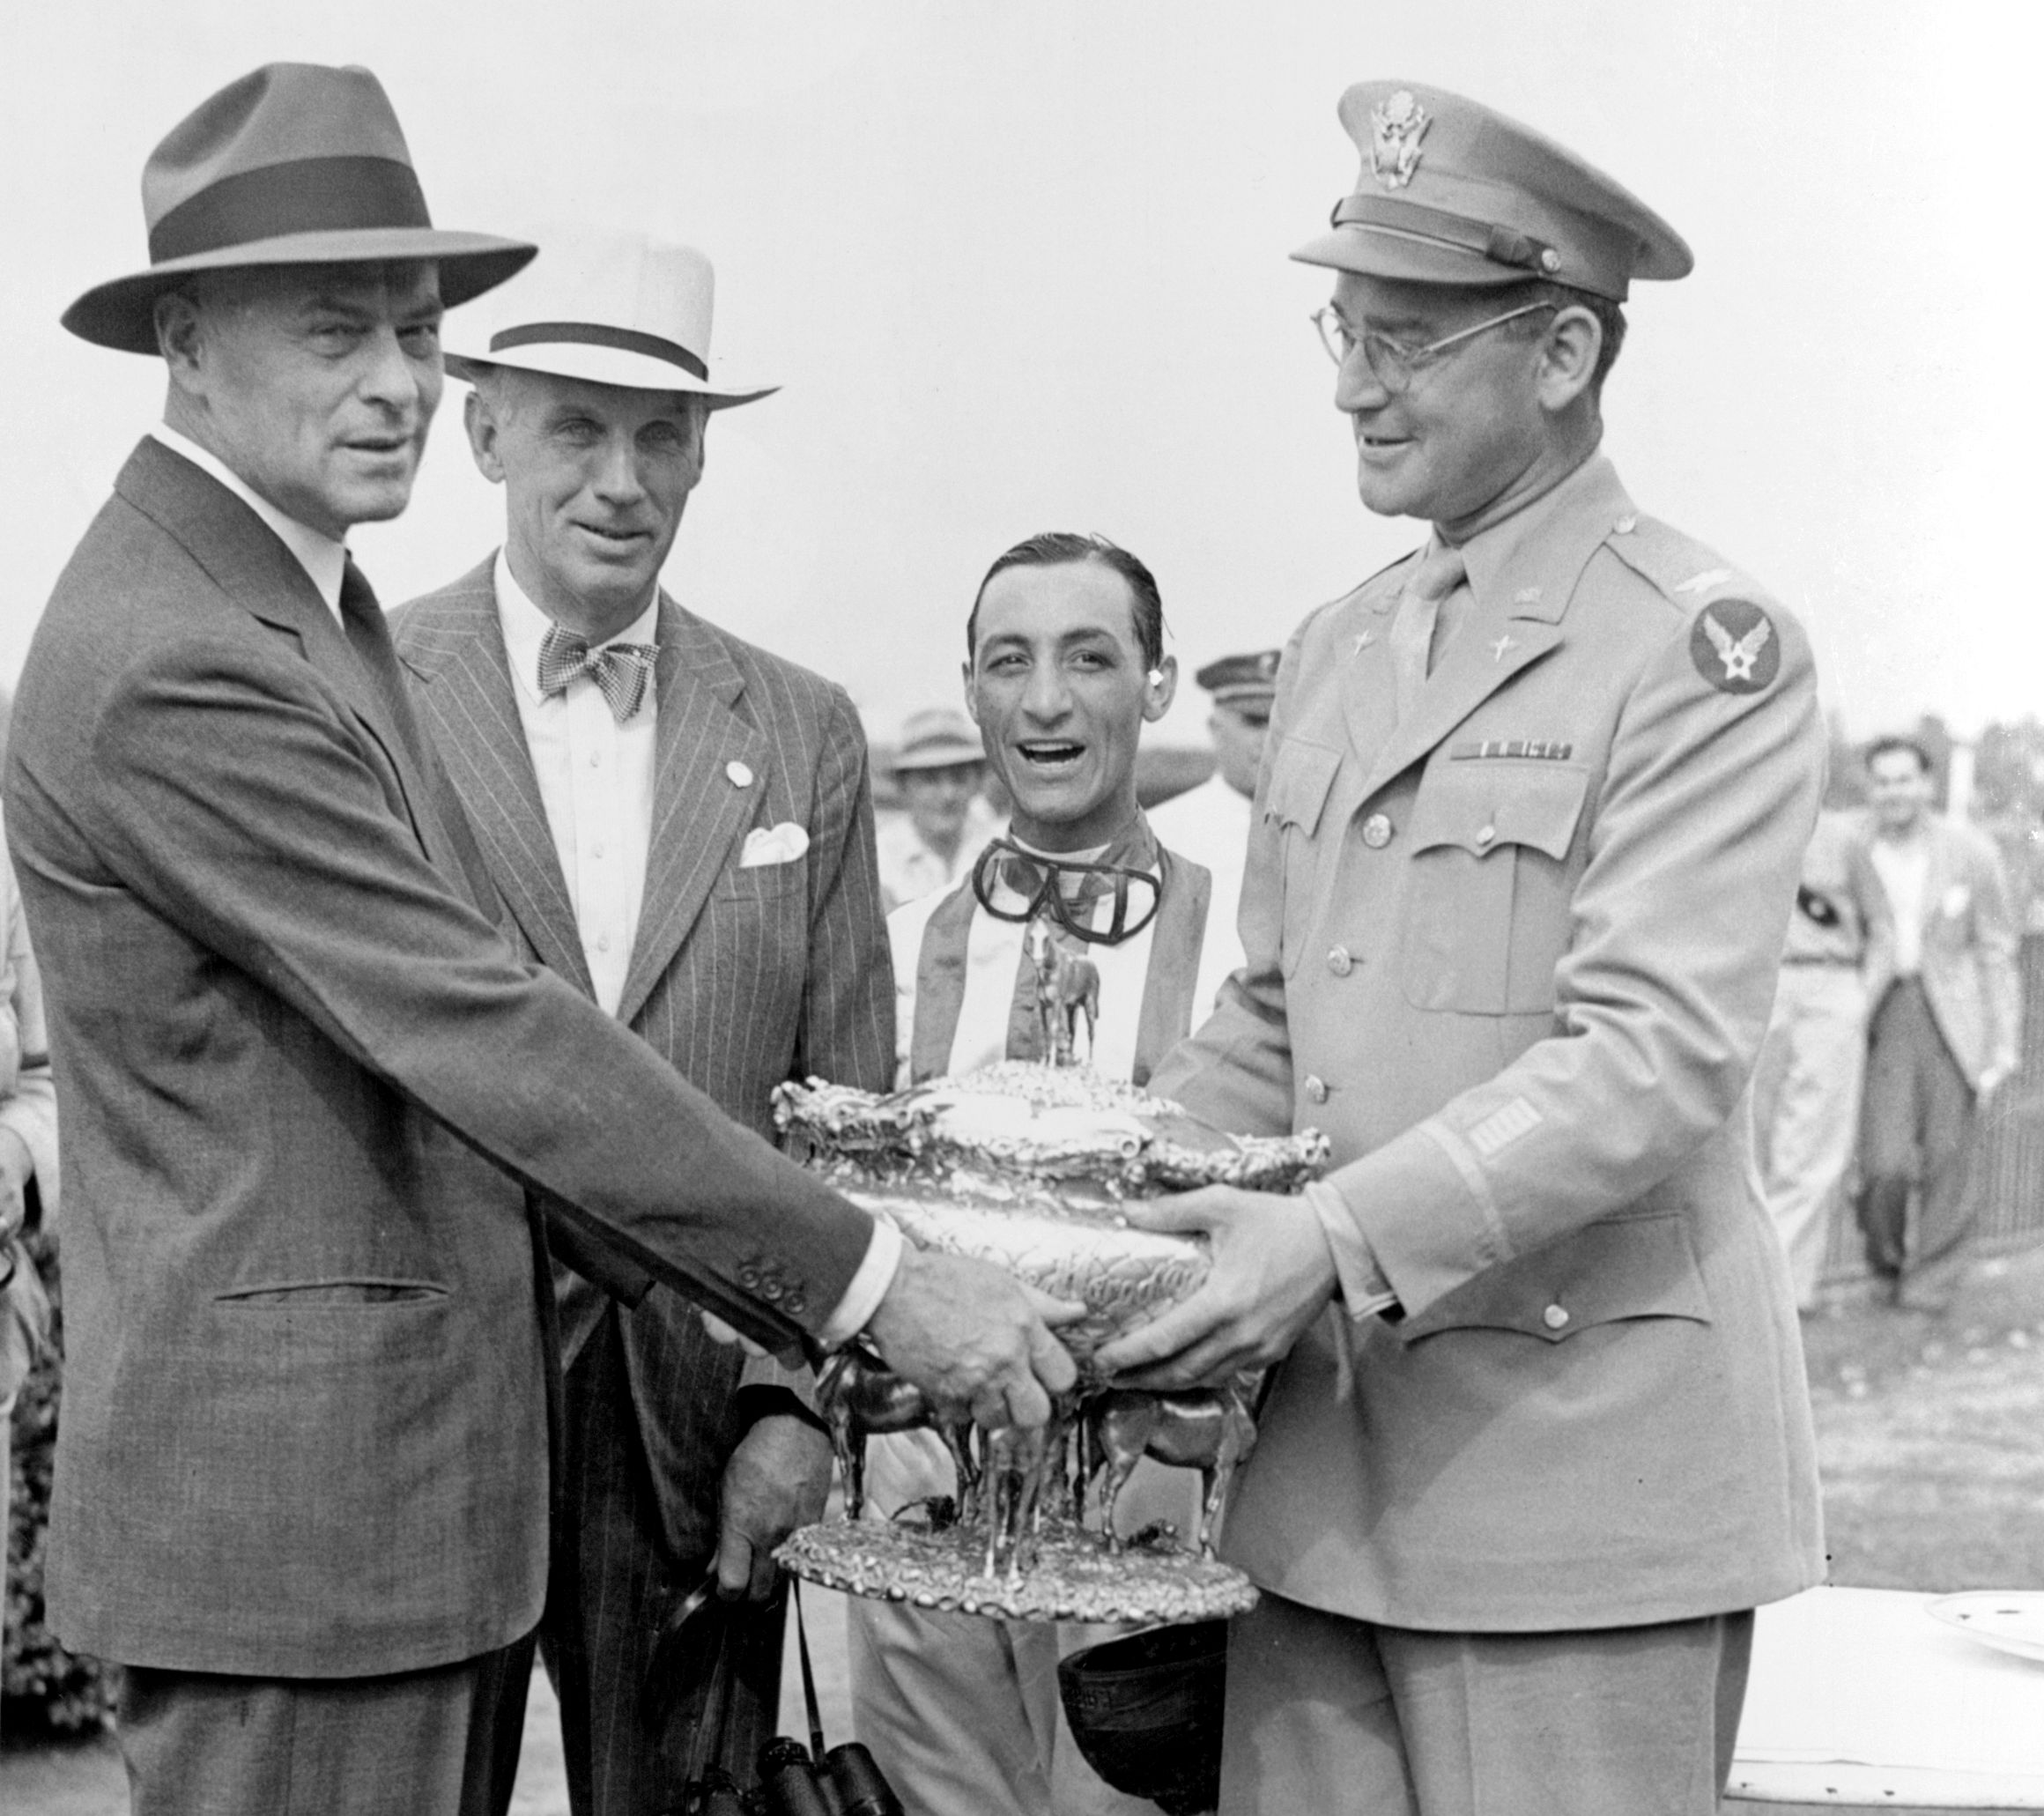 Keeneland Library Morgan Collection - Walter Jeffords, George D Widener Jr, E. Arcaro & John Hay Whitney at 1942 Belmont.jpg